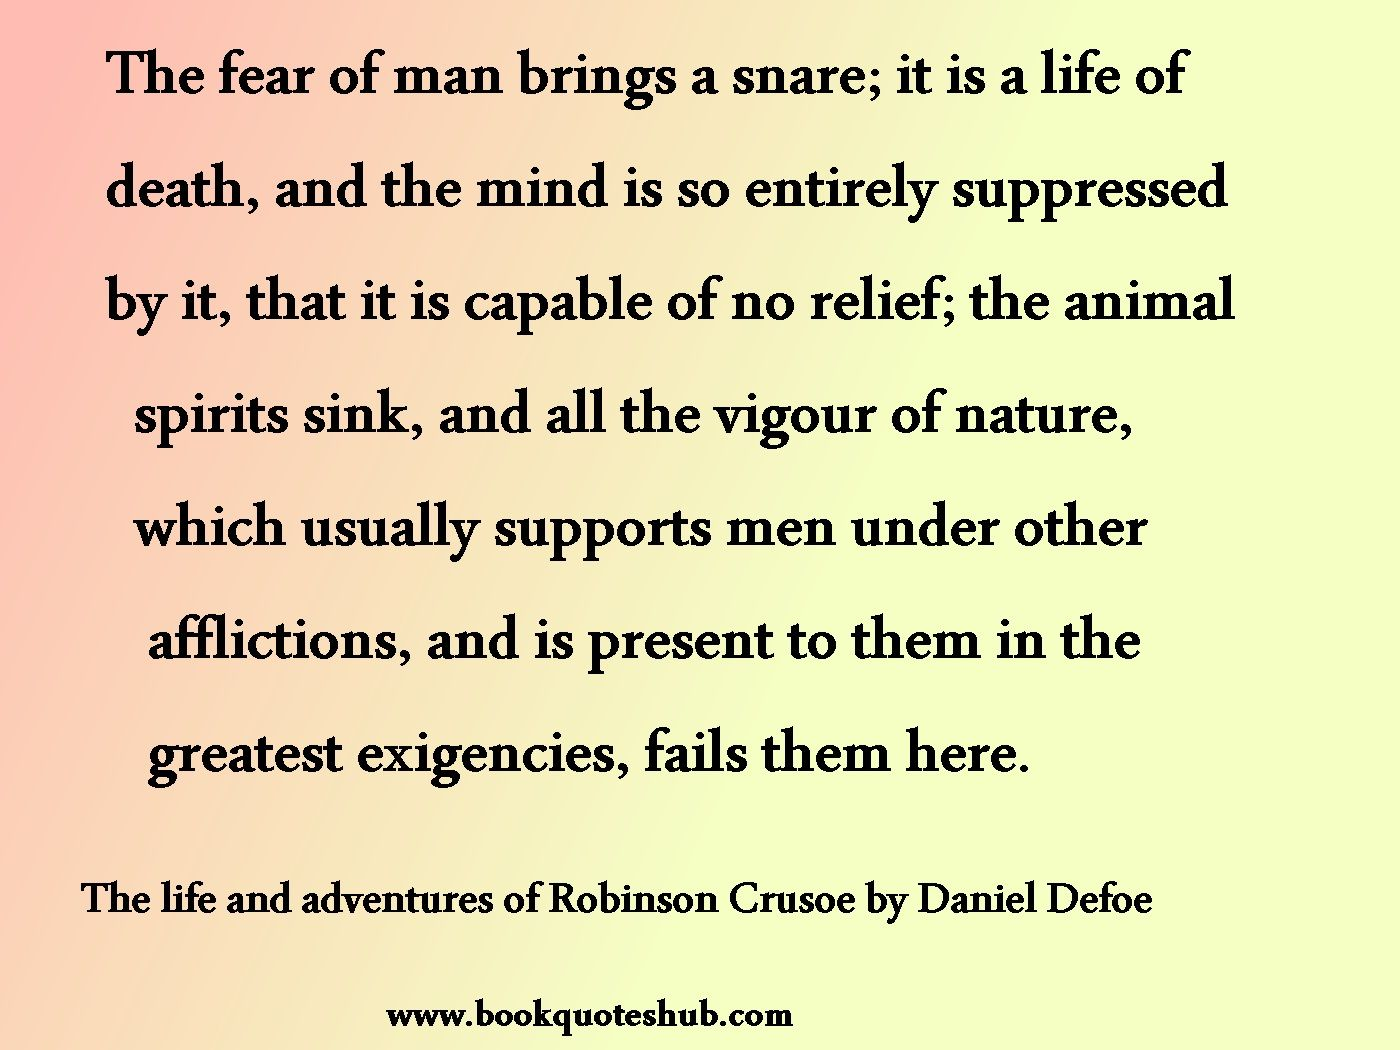 daniel defoe book quotes hub here s another thought daniel defoe book quotes hub here s another thought daniel defoe and thoughts